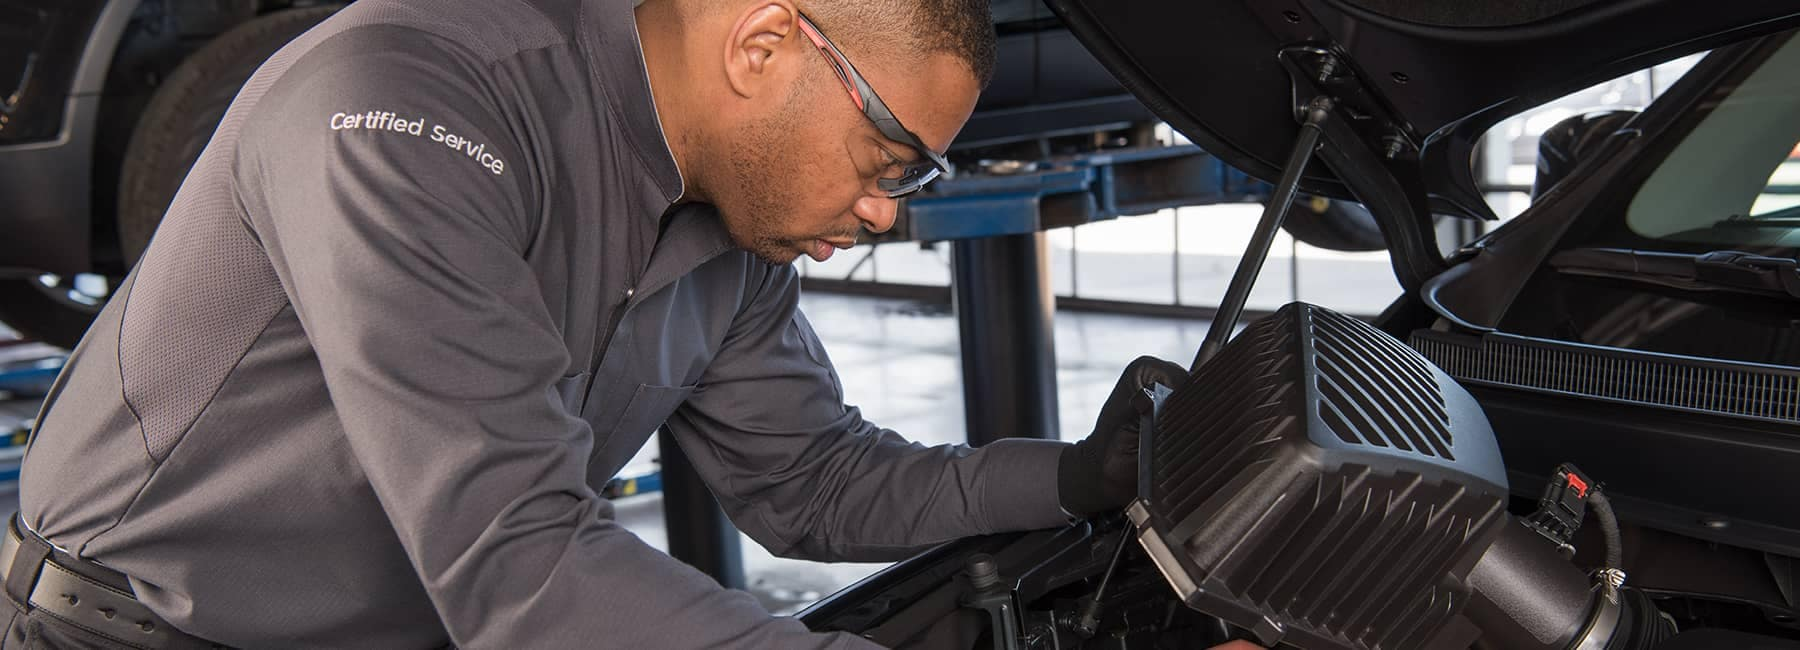 Certified technician examines car engine